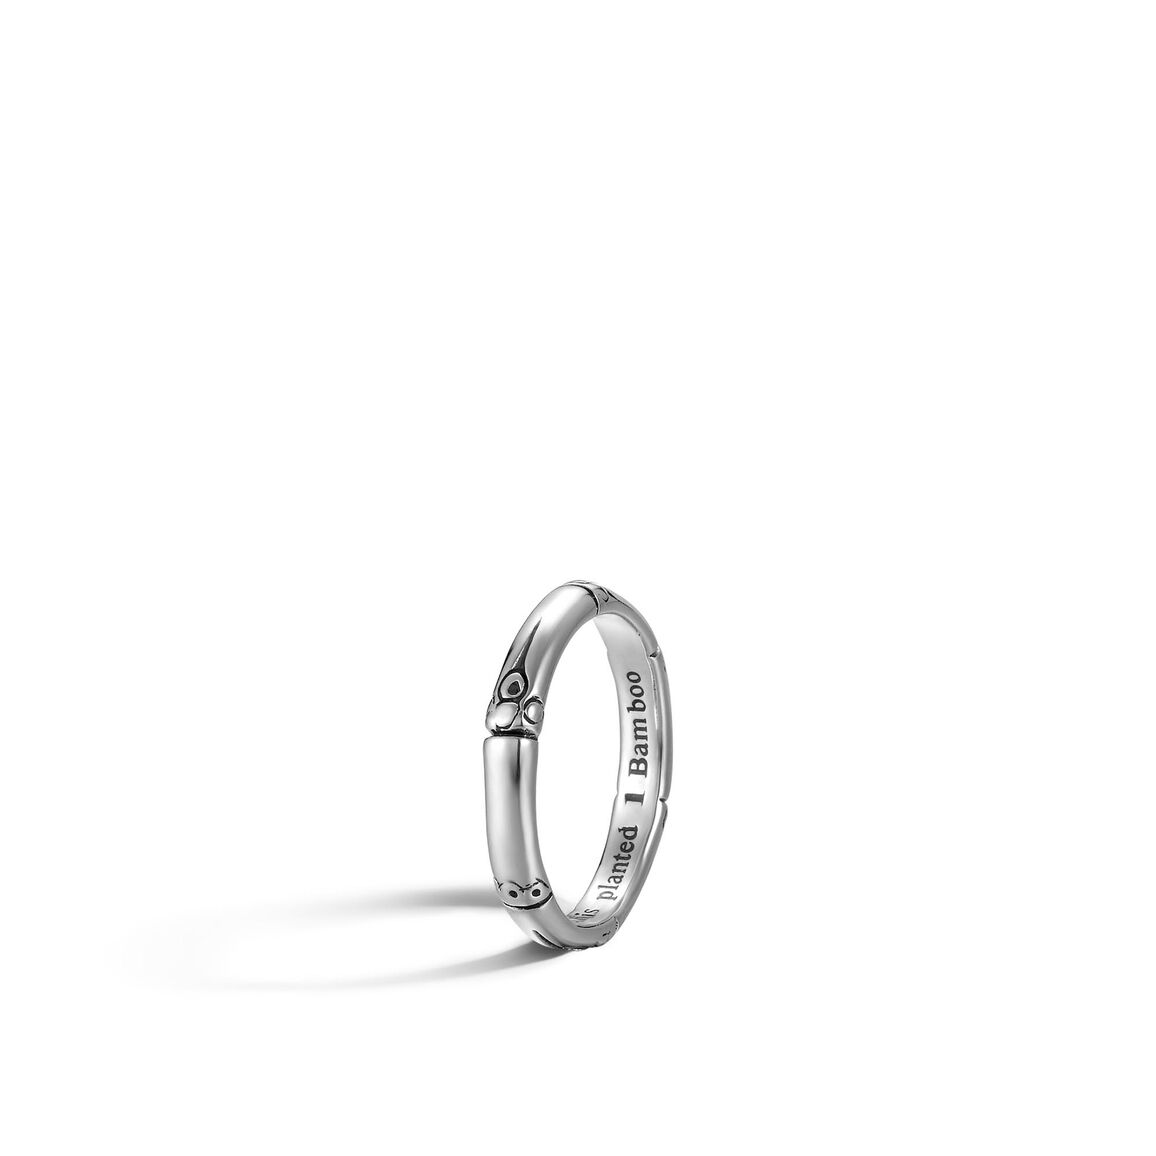 3MM Band Ring in Silver